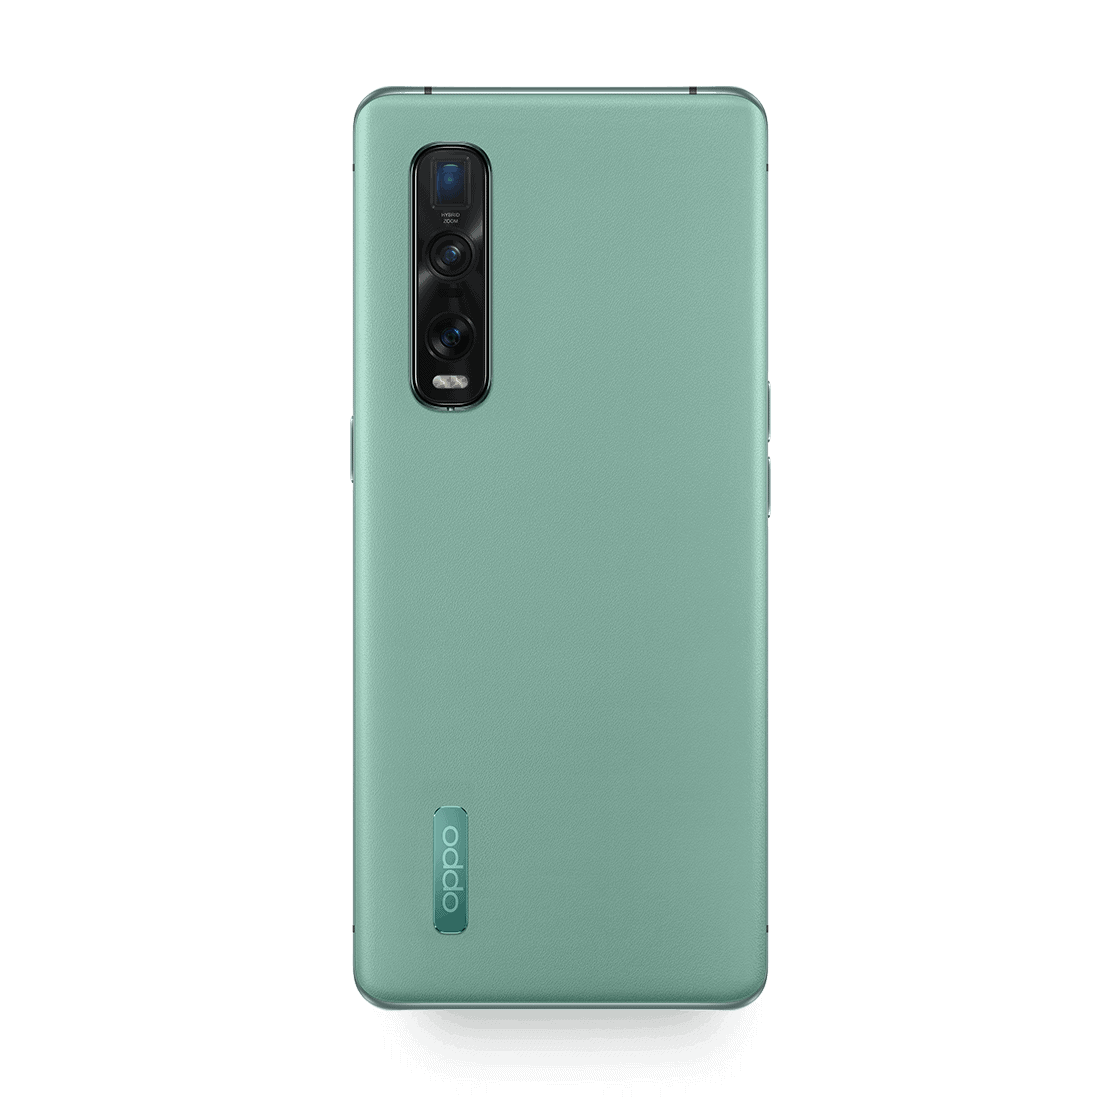 OPPO Find X2 Pro Green Vegan Leather image 2